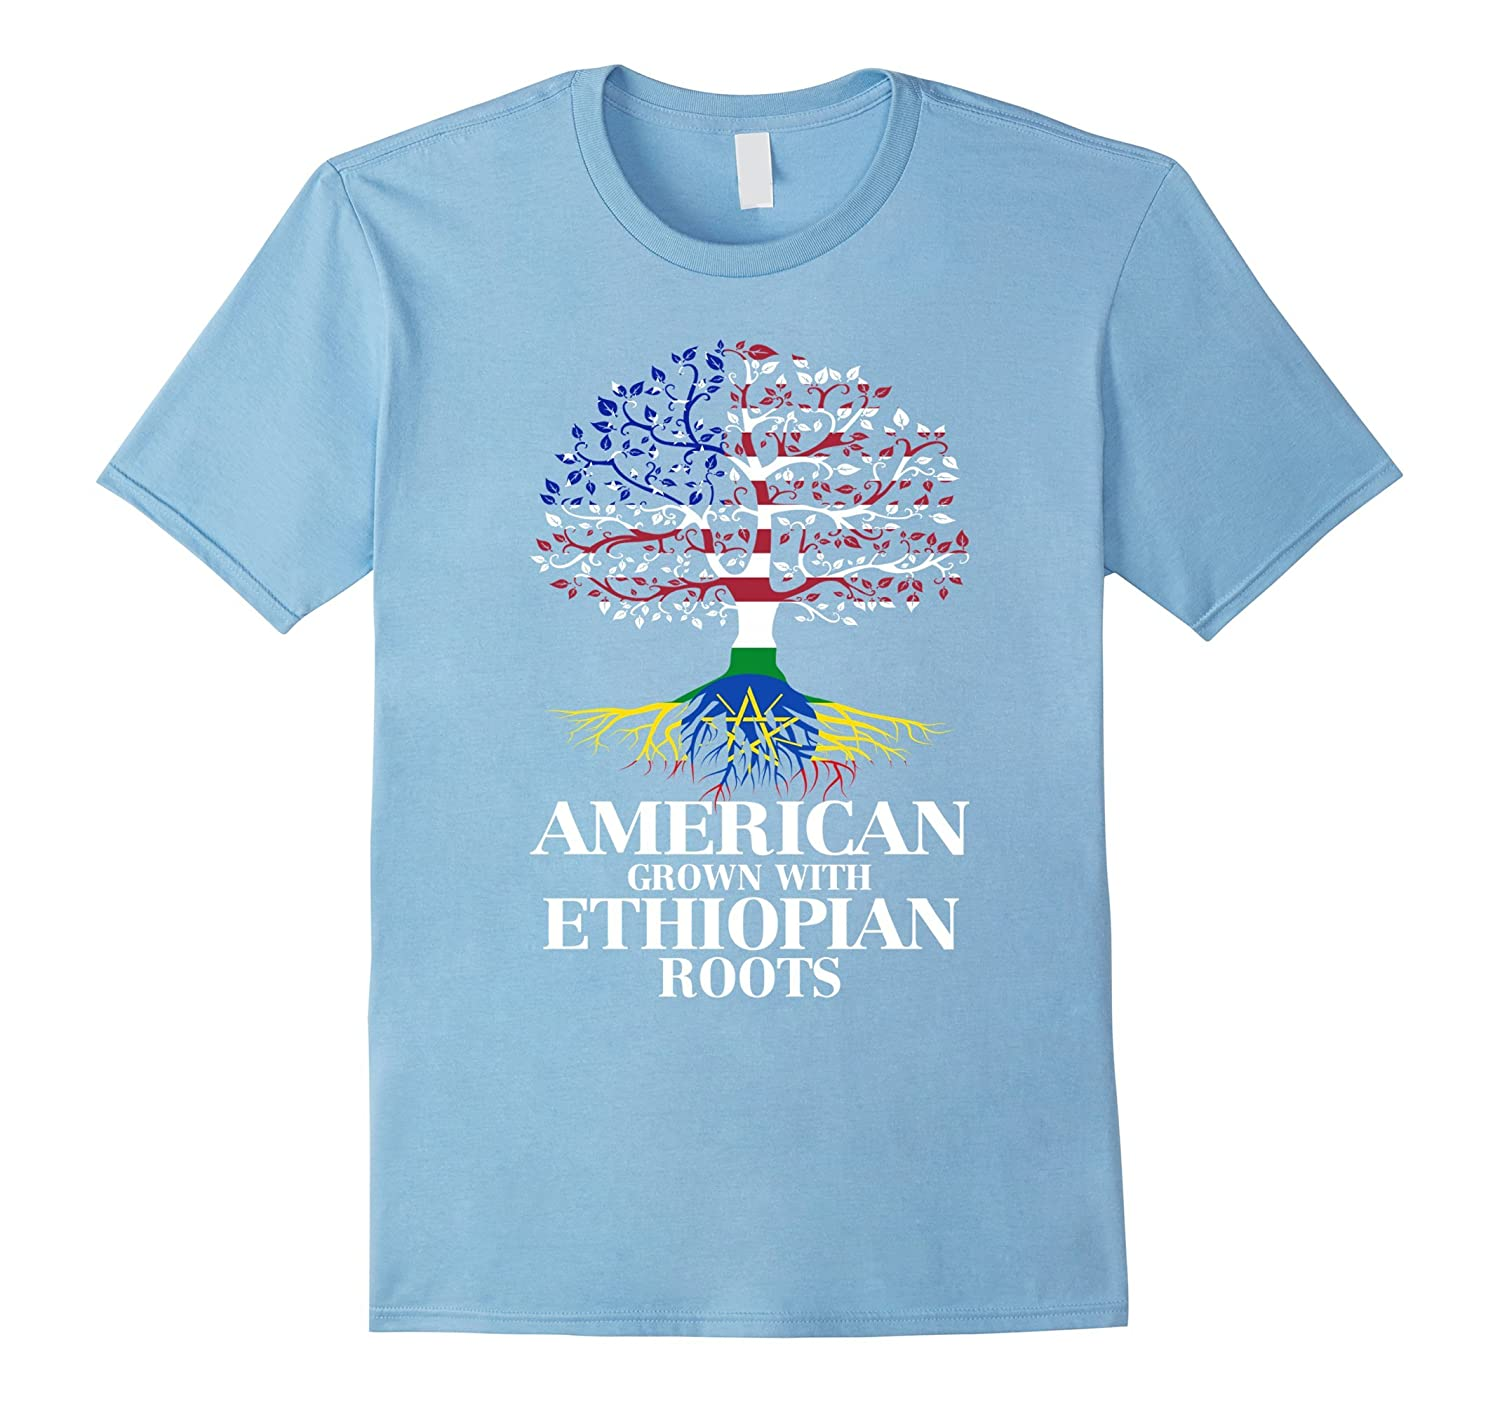 American Grown With ETHIOPIAN Roots T-Shirt Tshirt-BN